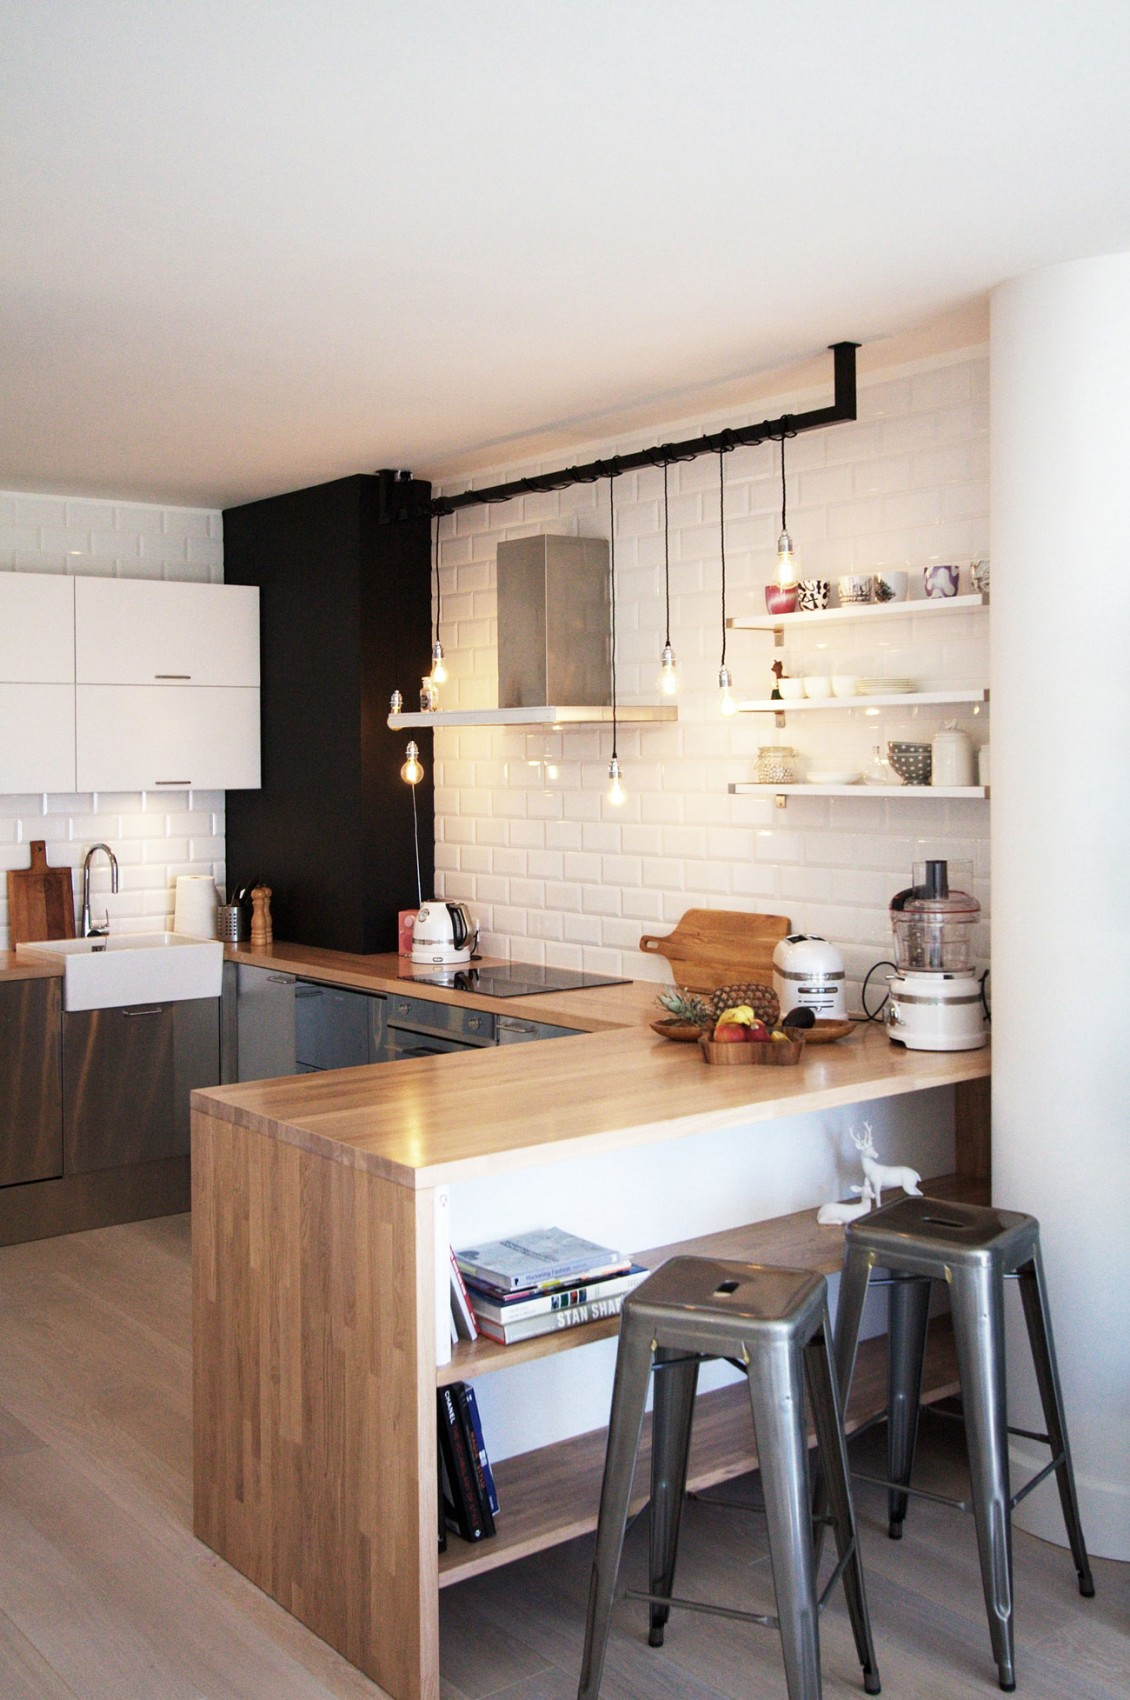 Subway tiles also look great when complemented by wood counters or by industrial pipe features